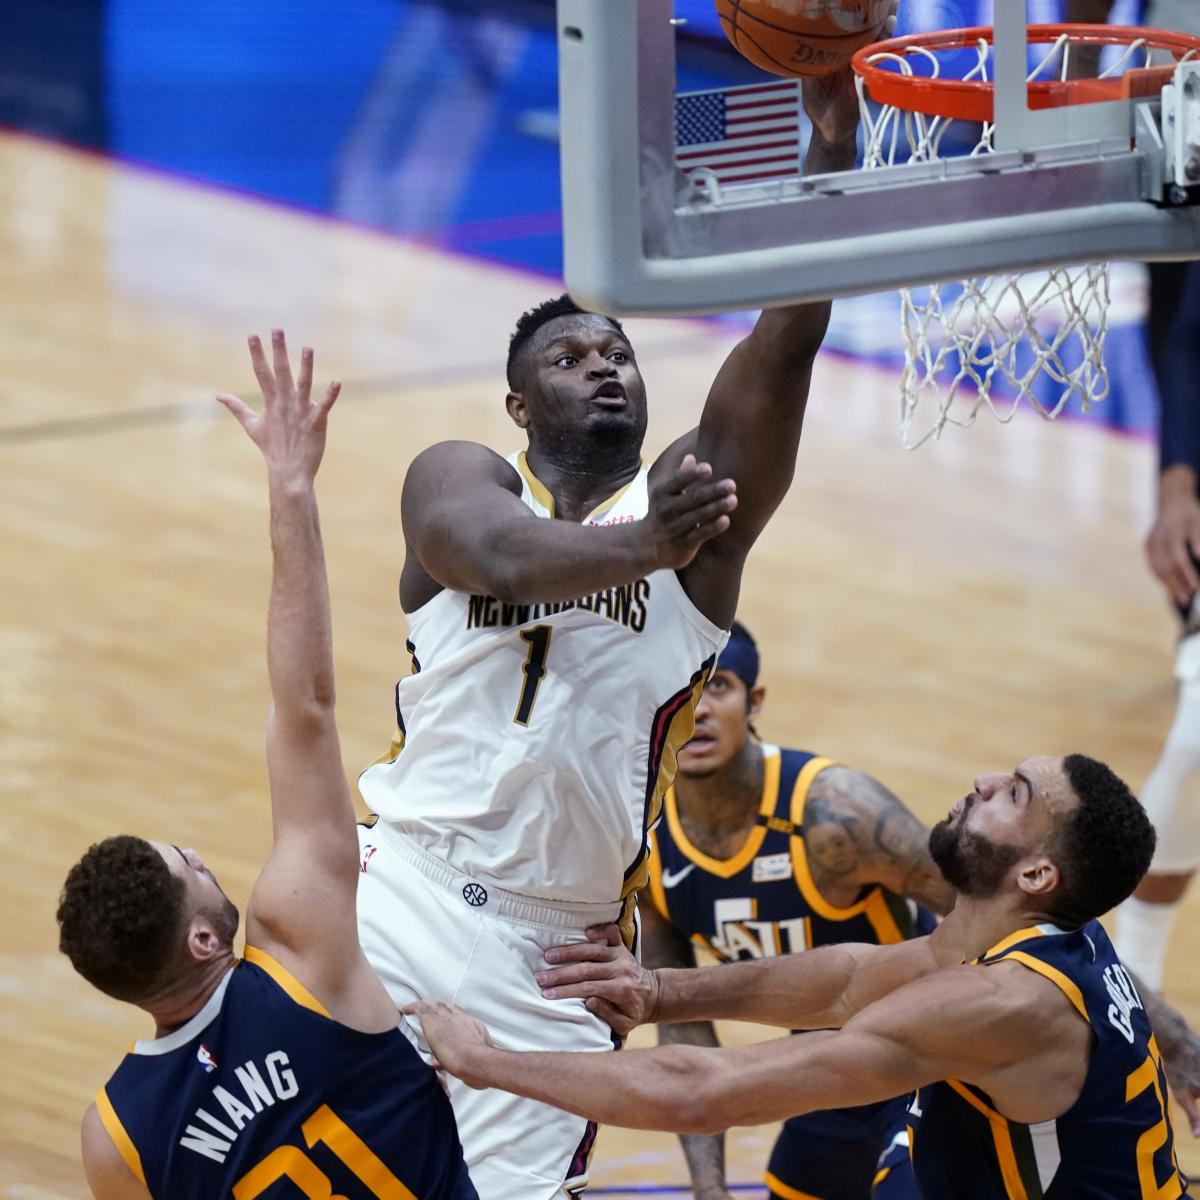 Zion Williamson, Lonzo Ball, Pelicans Hold off Donovan Mitchell, Jazz for Win